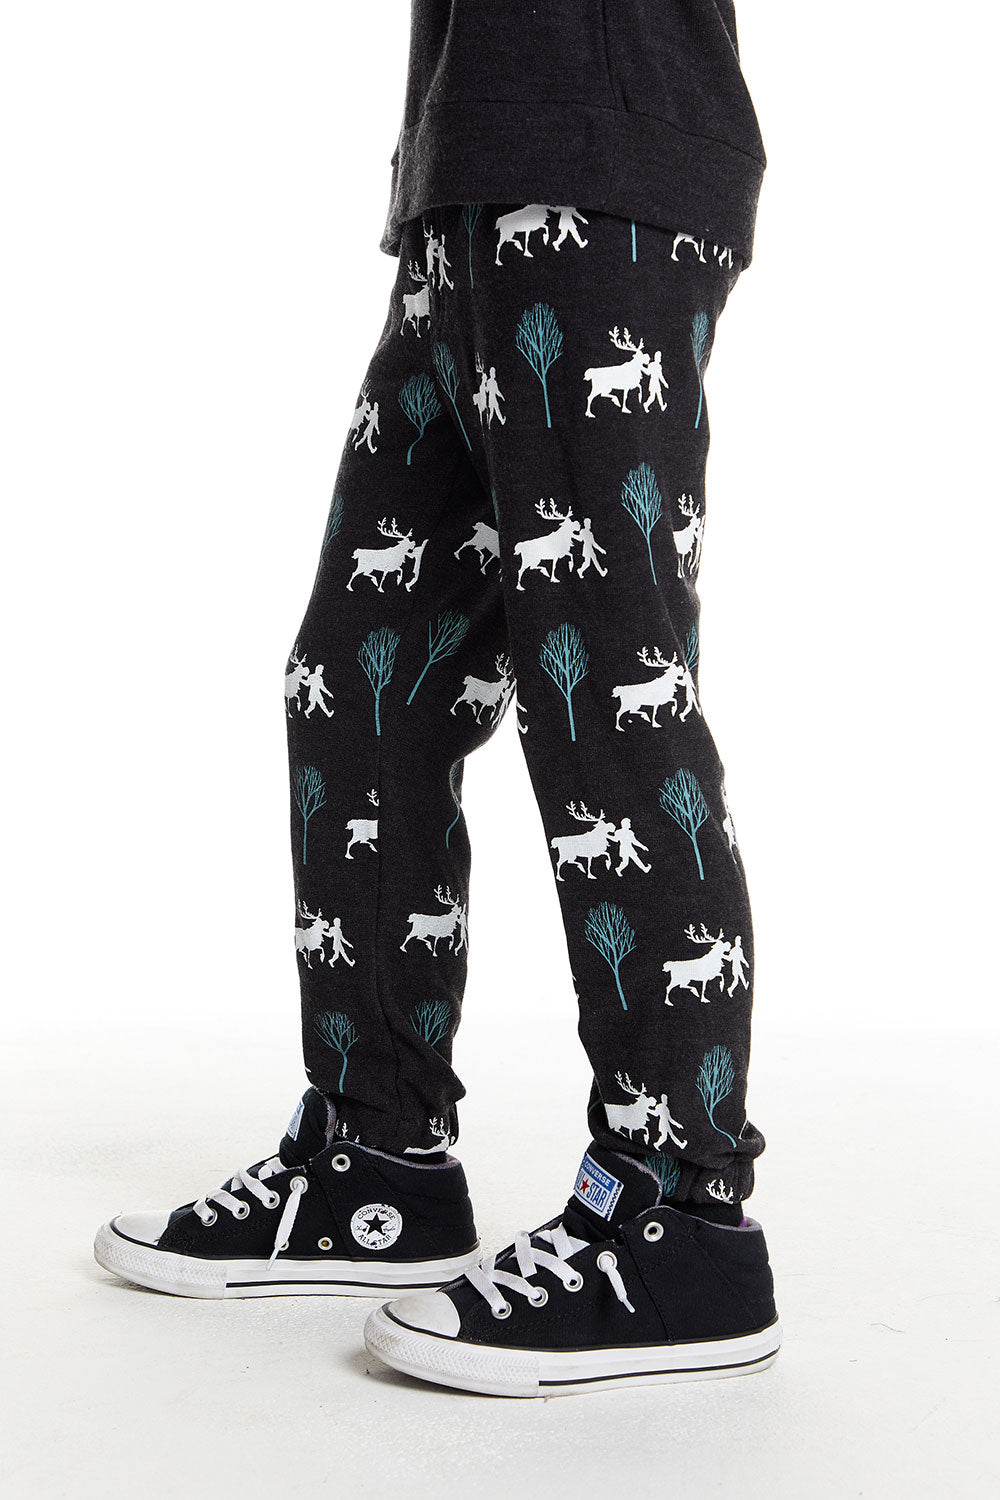 Disney's Frozen 2 - Sven And Kristoff Pants